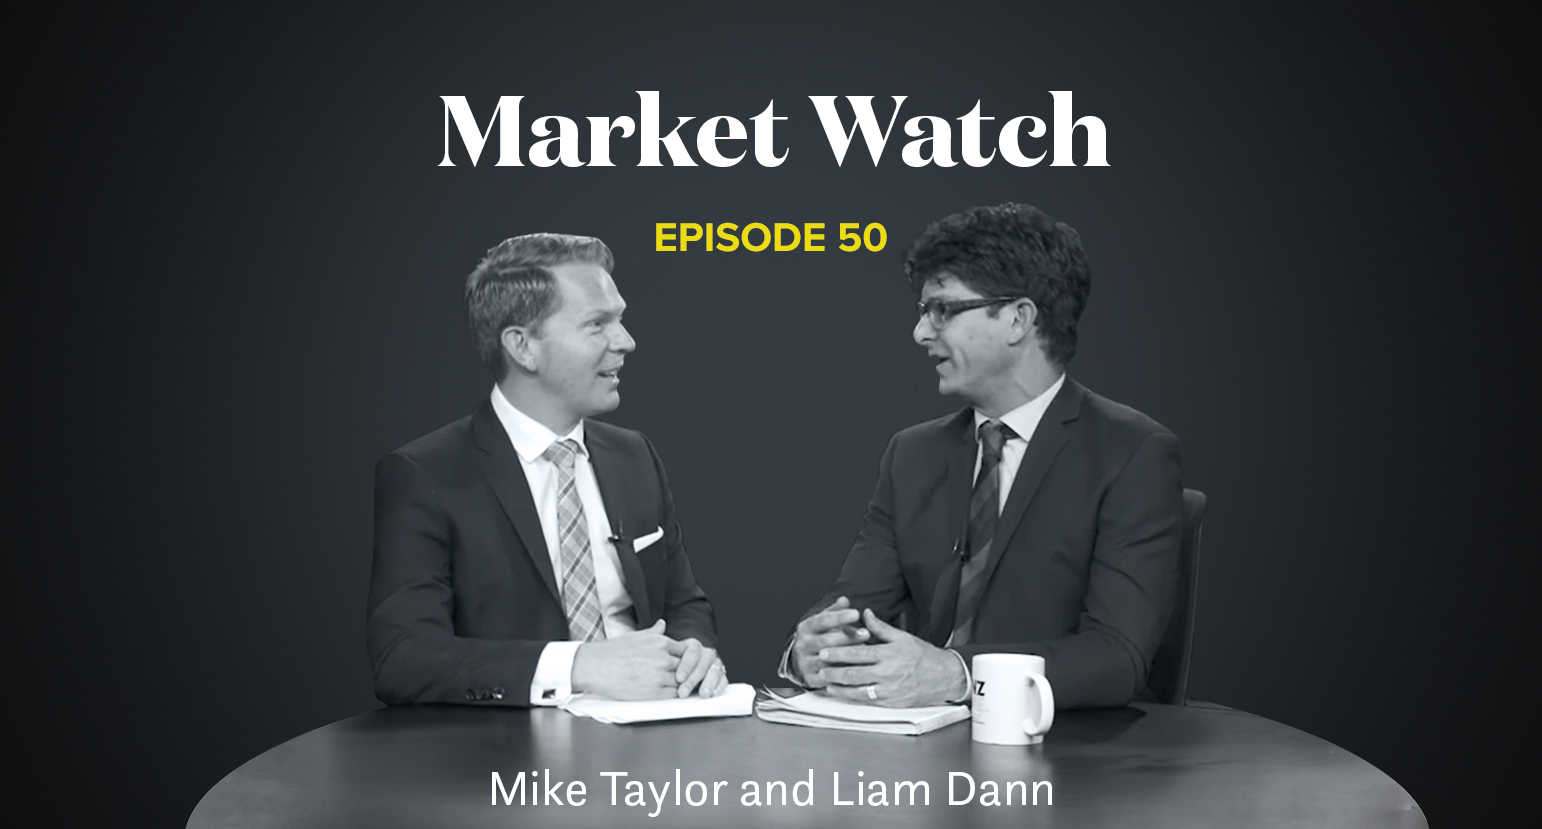 Market-Watch-Video-and-EP50-1.jpg